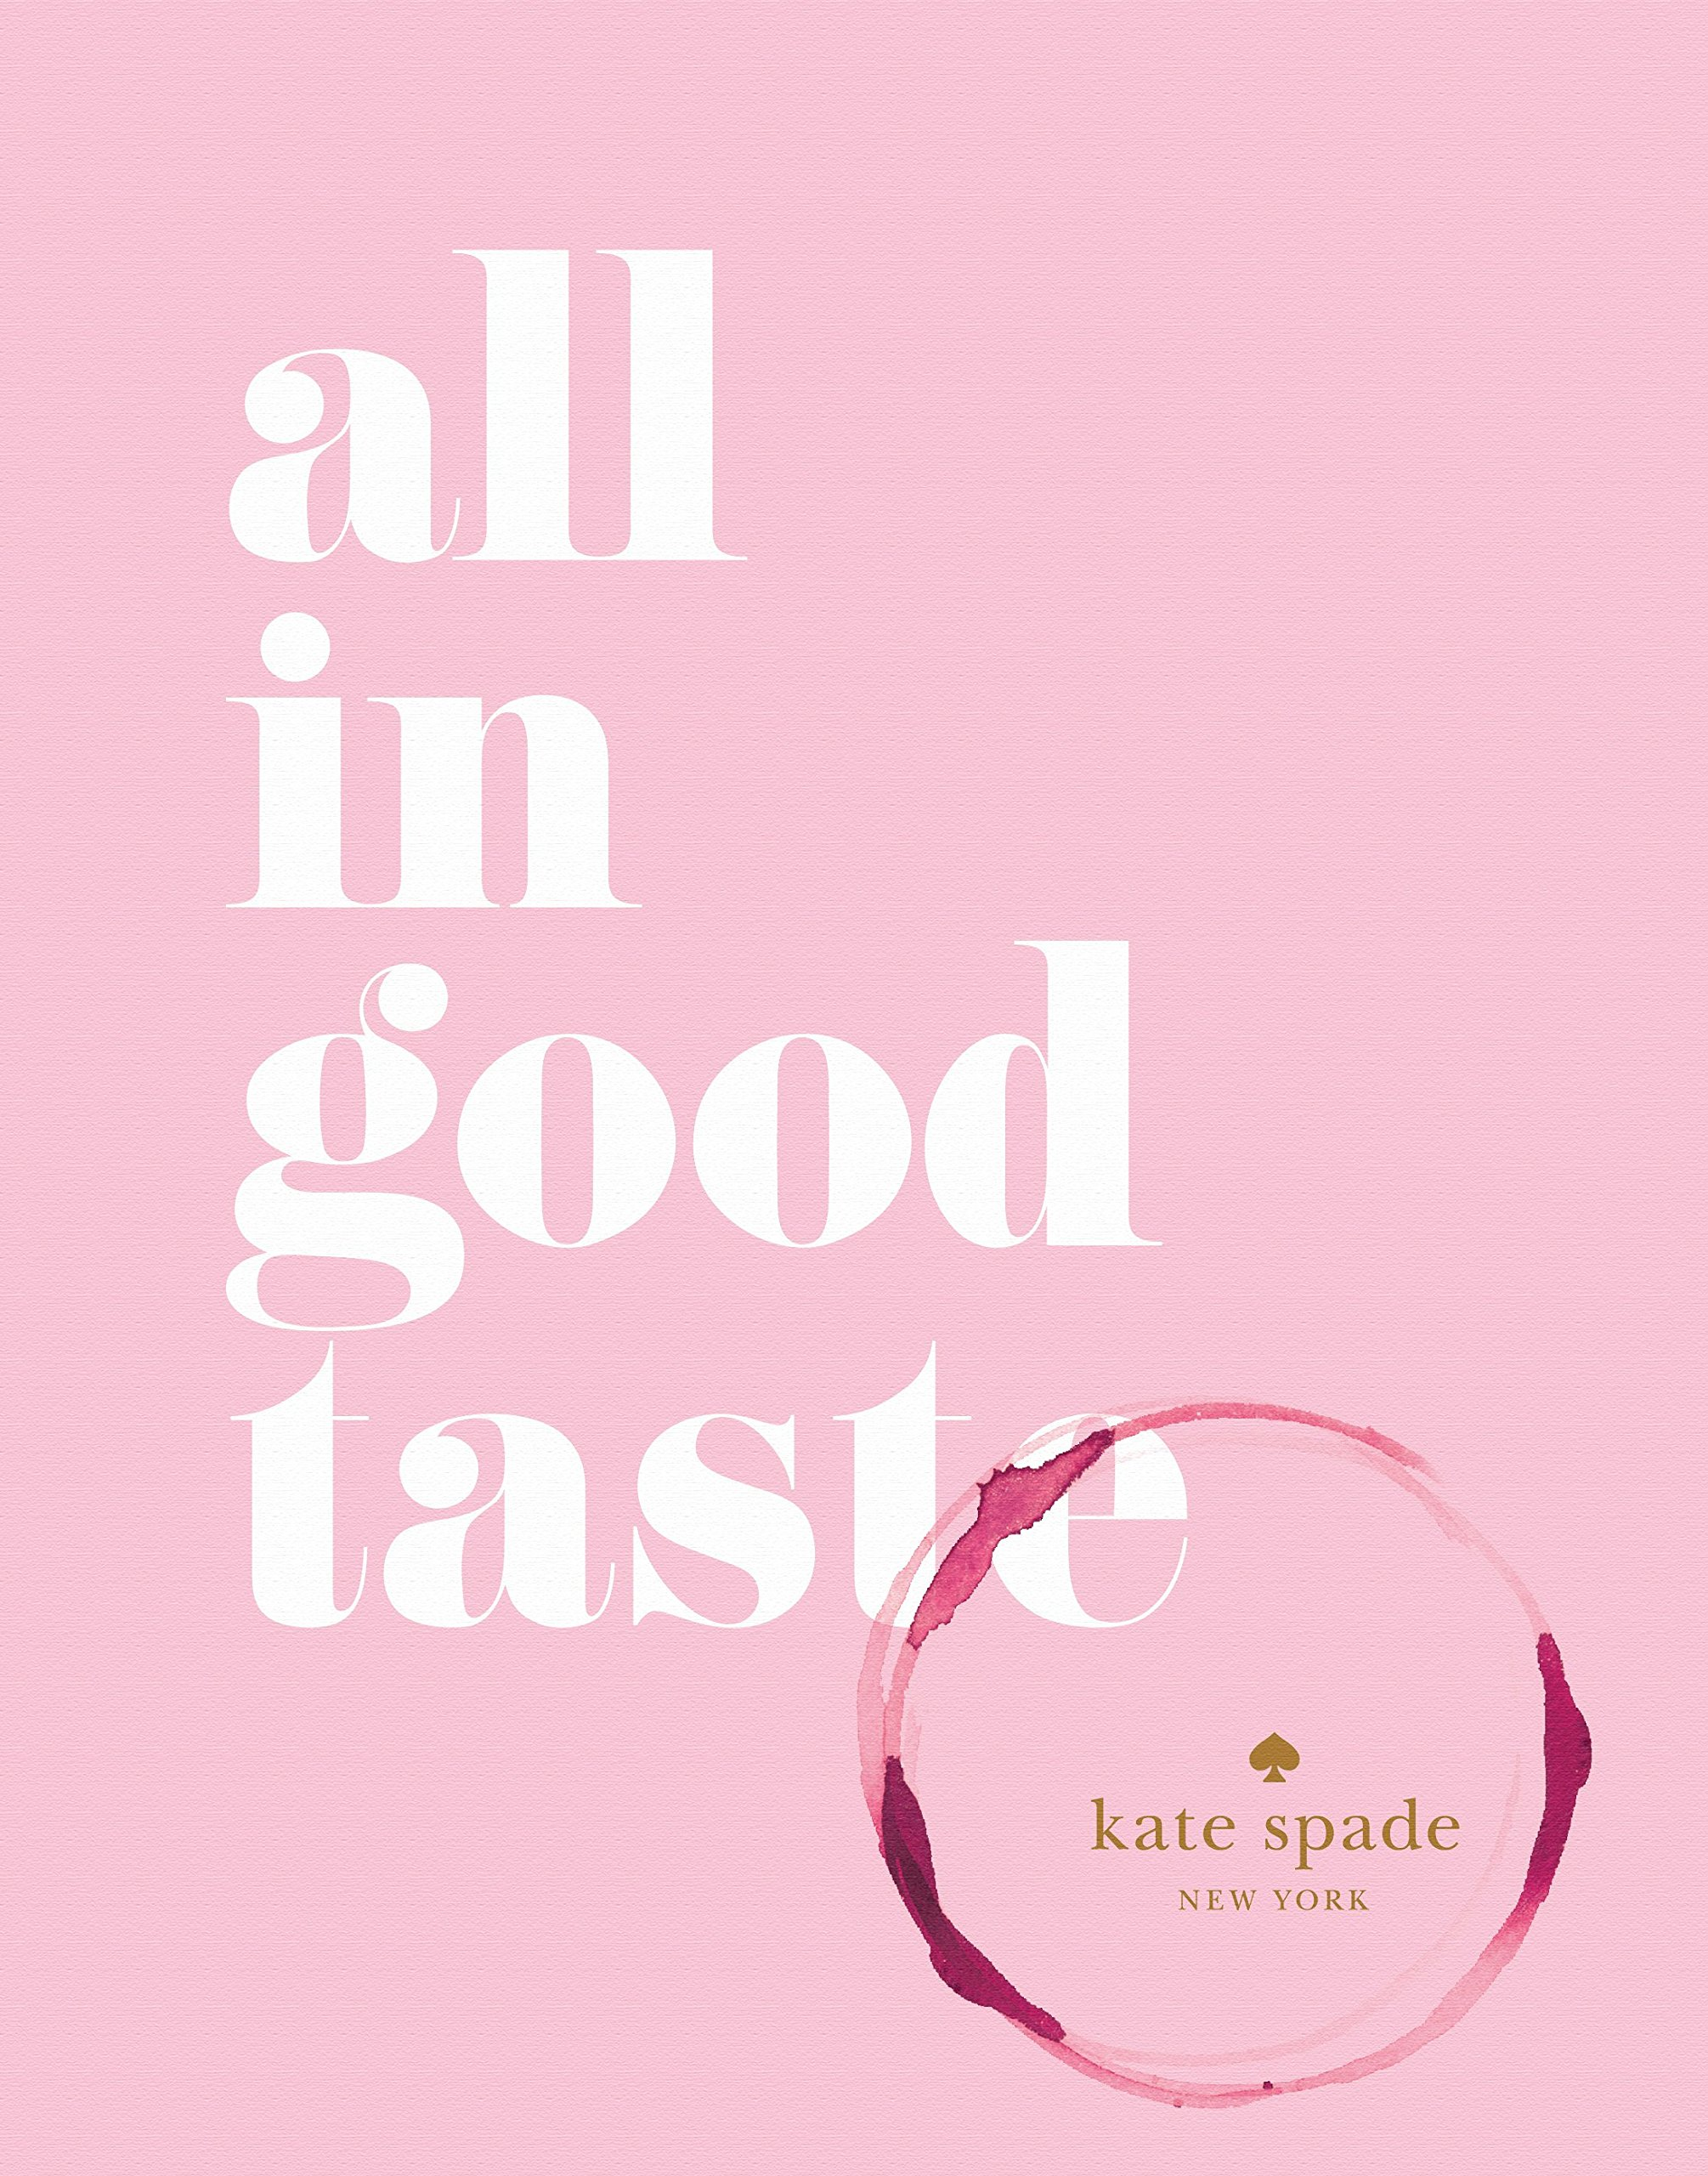 kate spade new york: all in good taste: kate spade new york: 9781419717871:  Amazon.com: Books